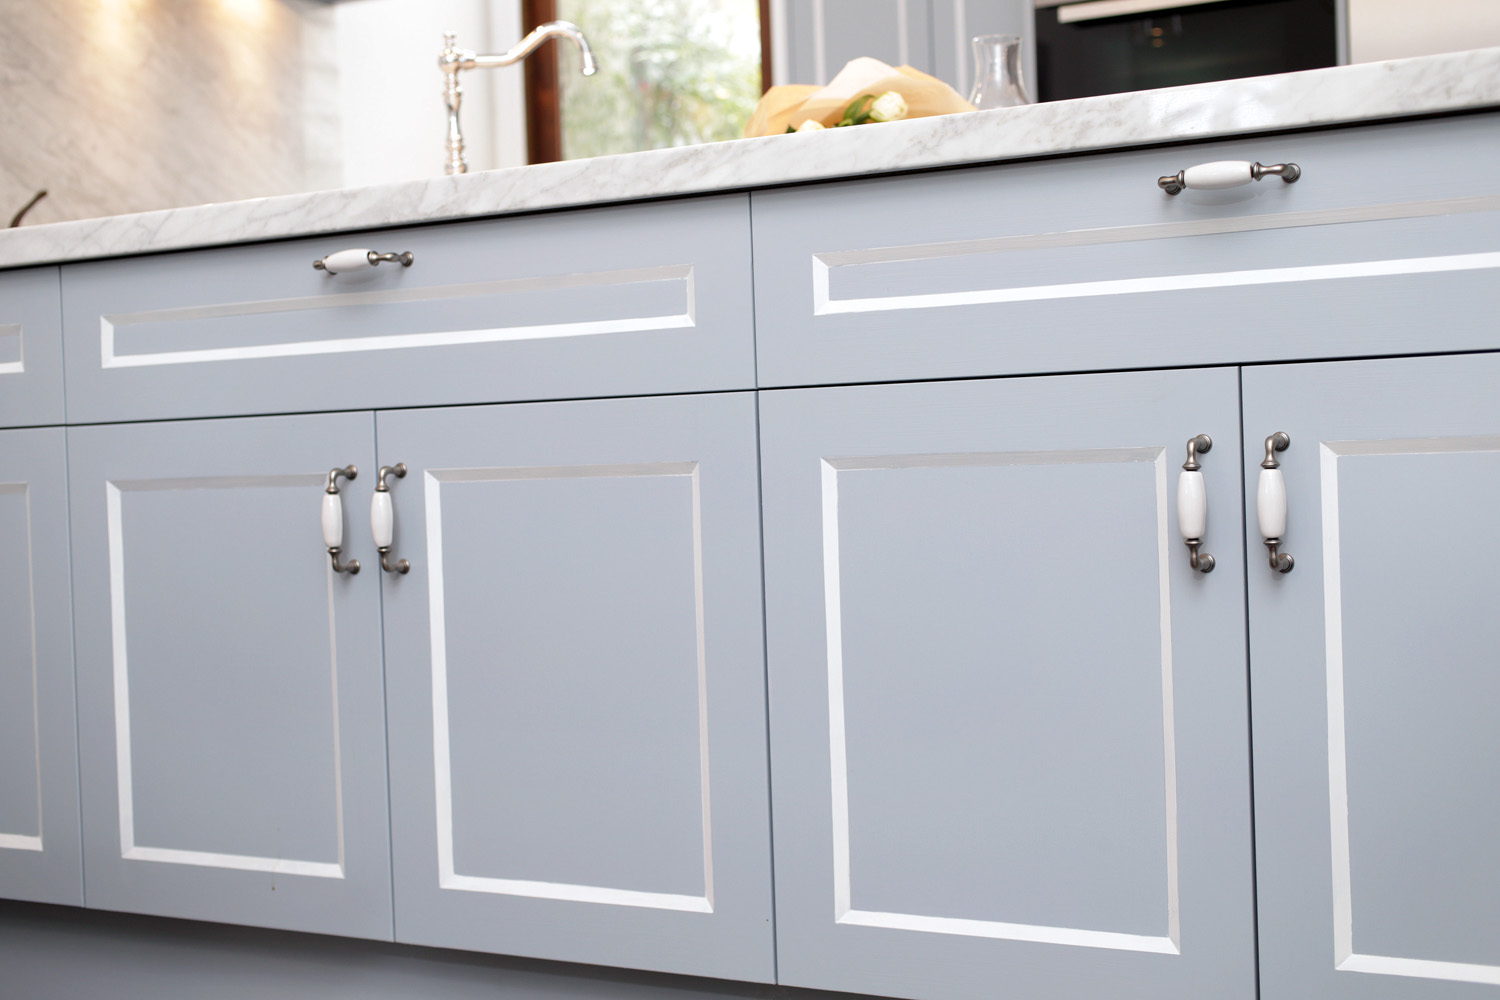 This compact kitchen design makes up for space by incorporating cupboards and drawers within a U-shaped bench